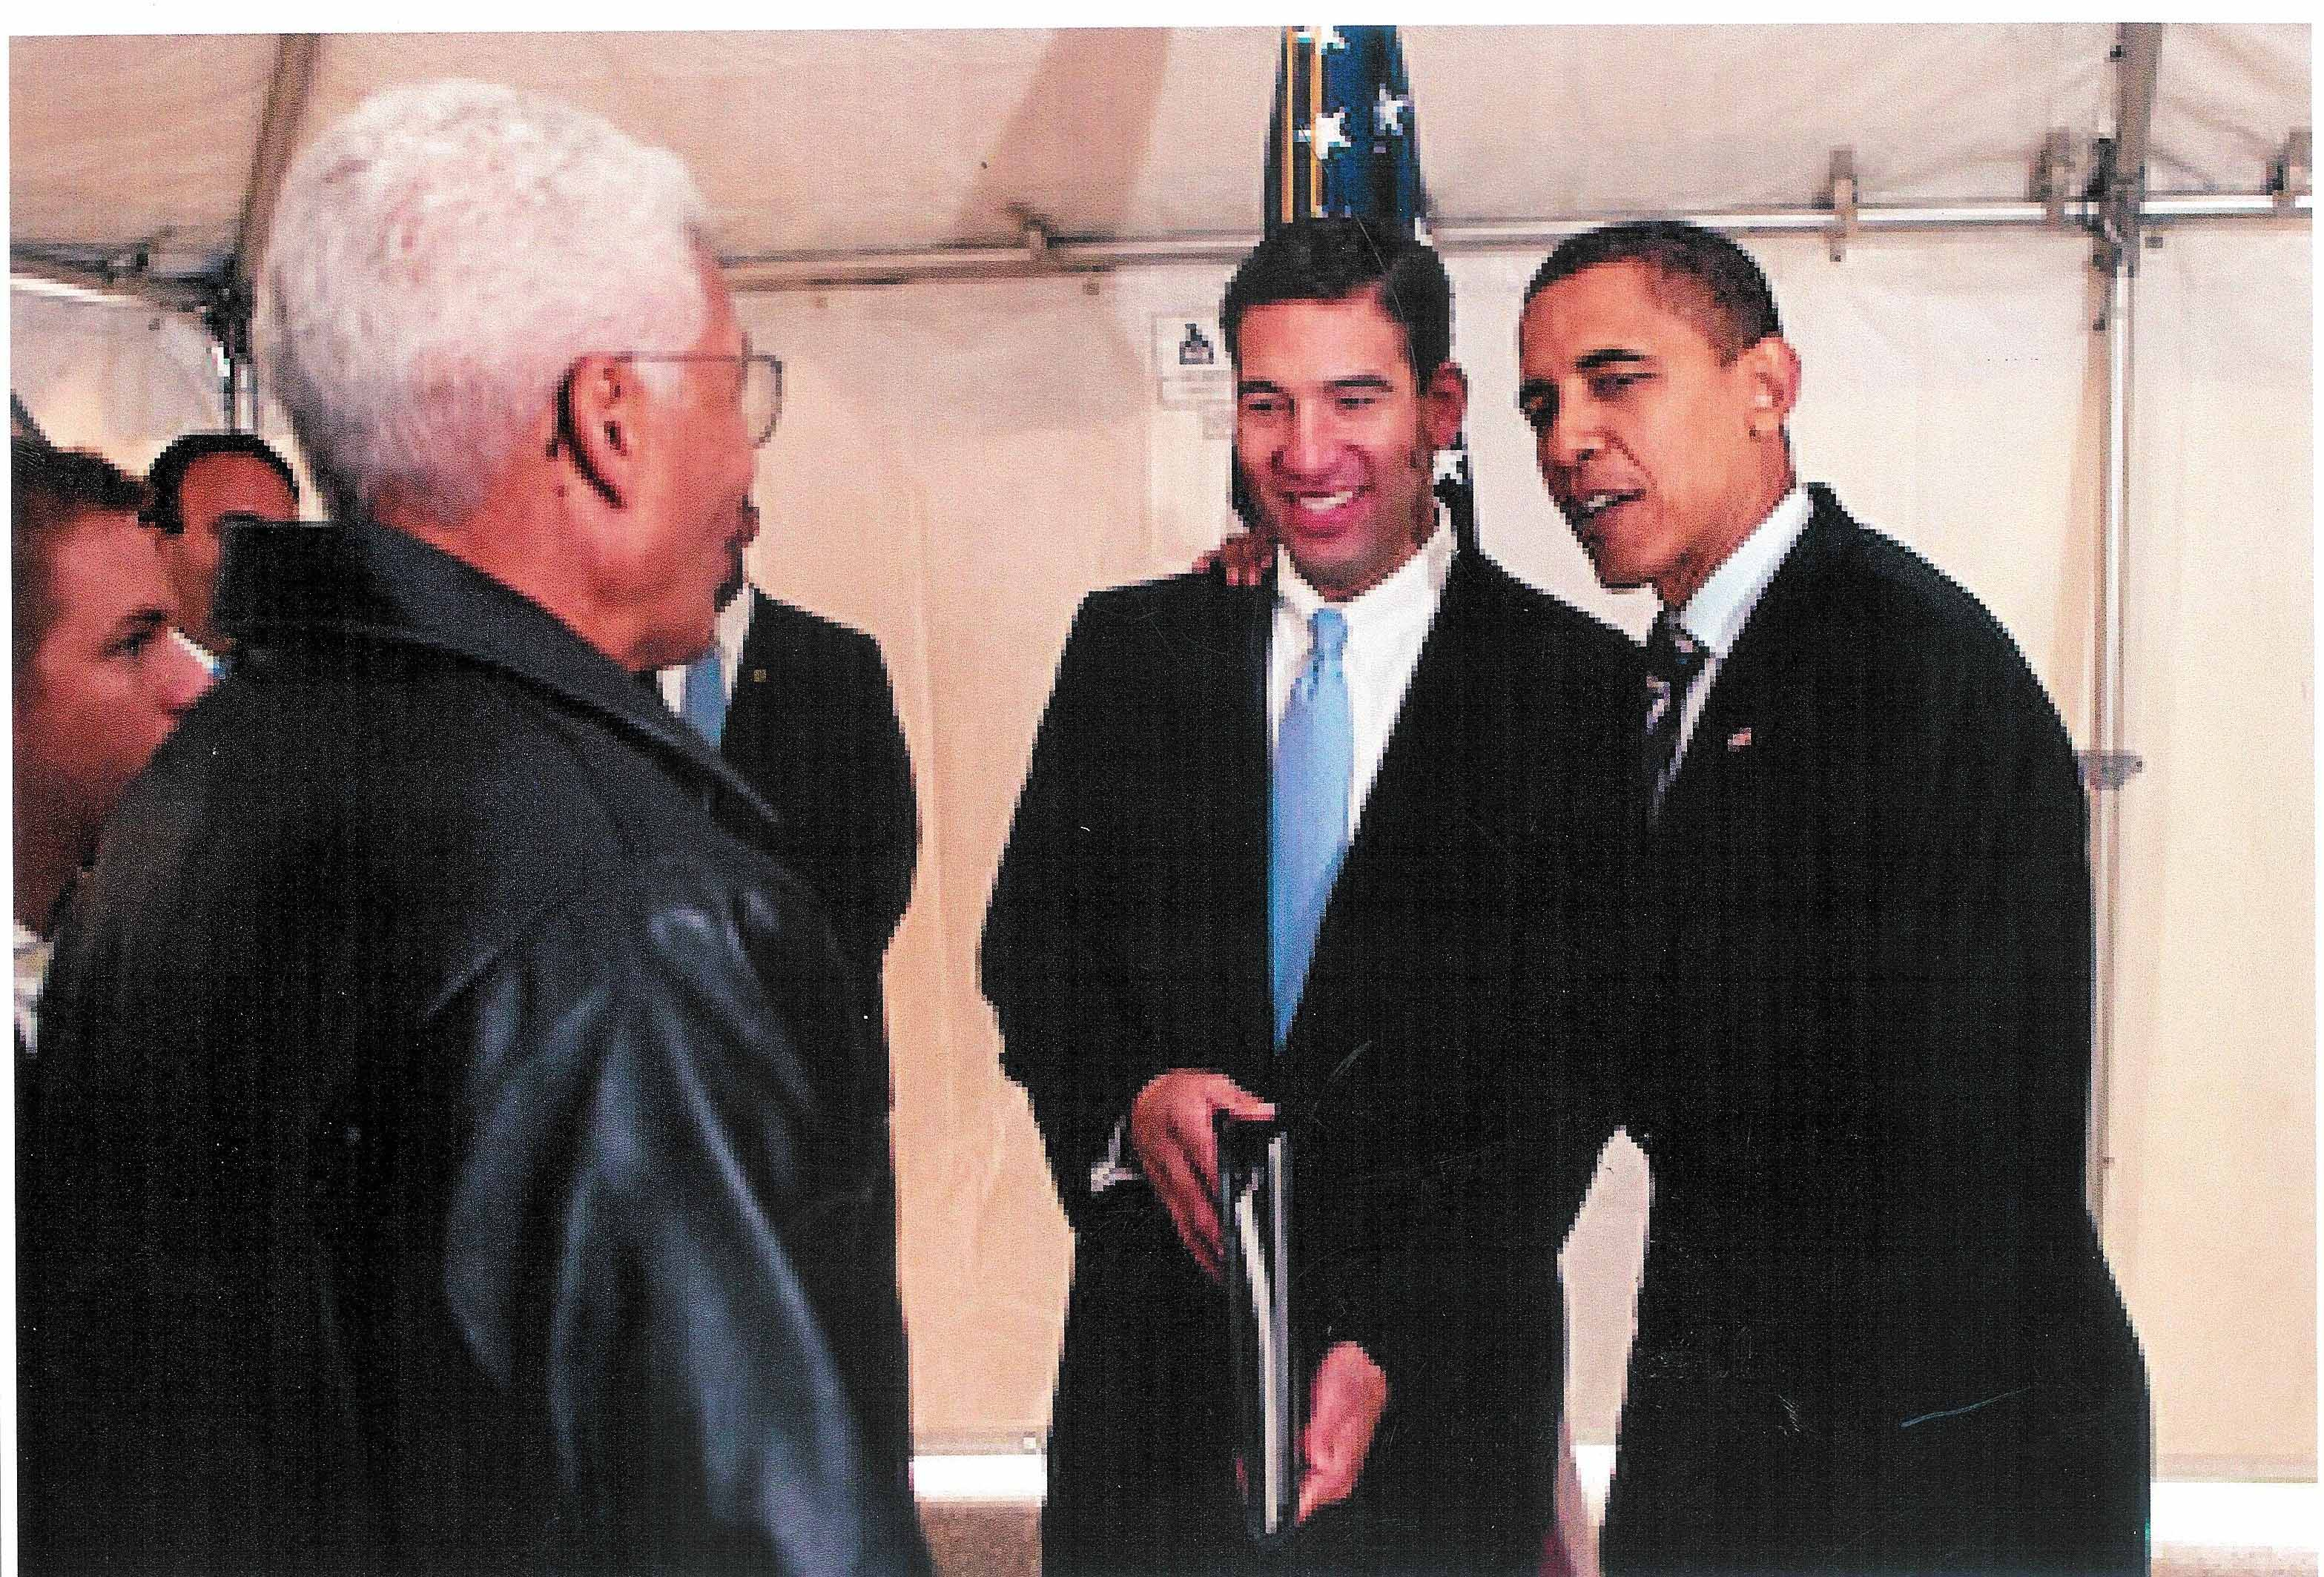 Pat Miles and Barack